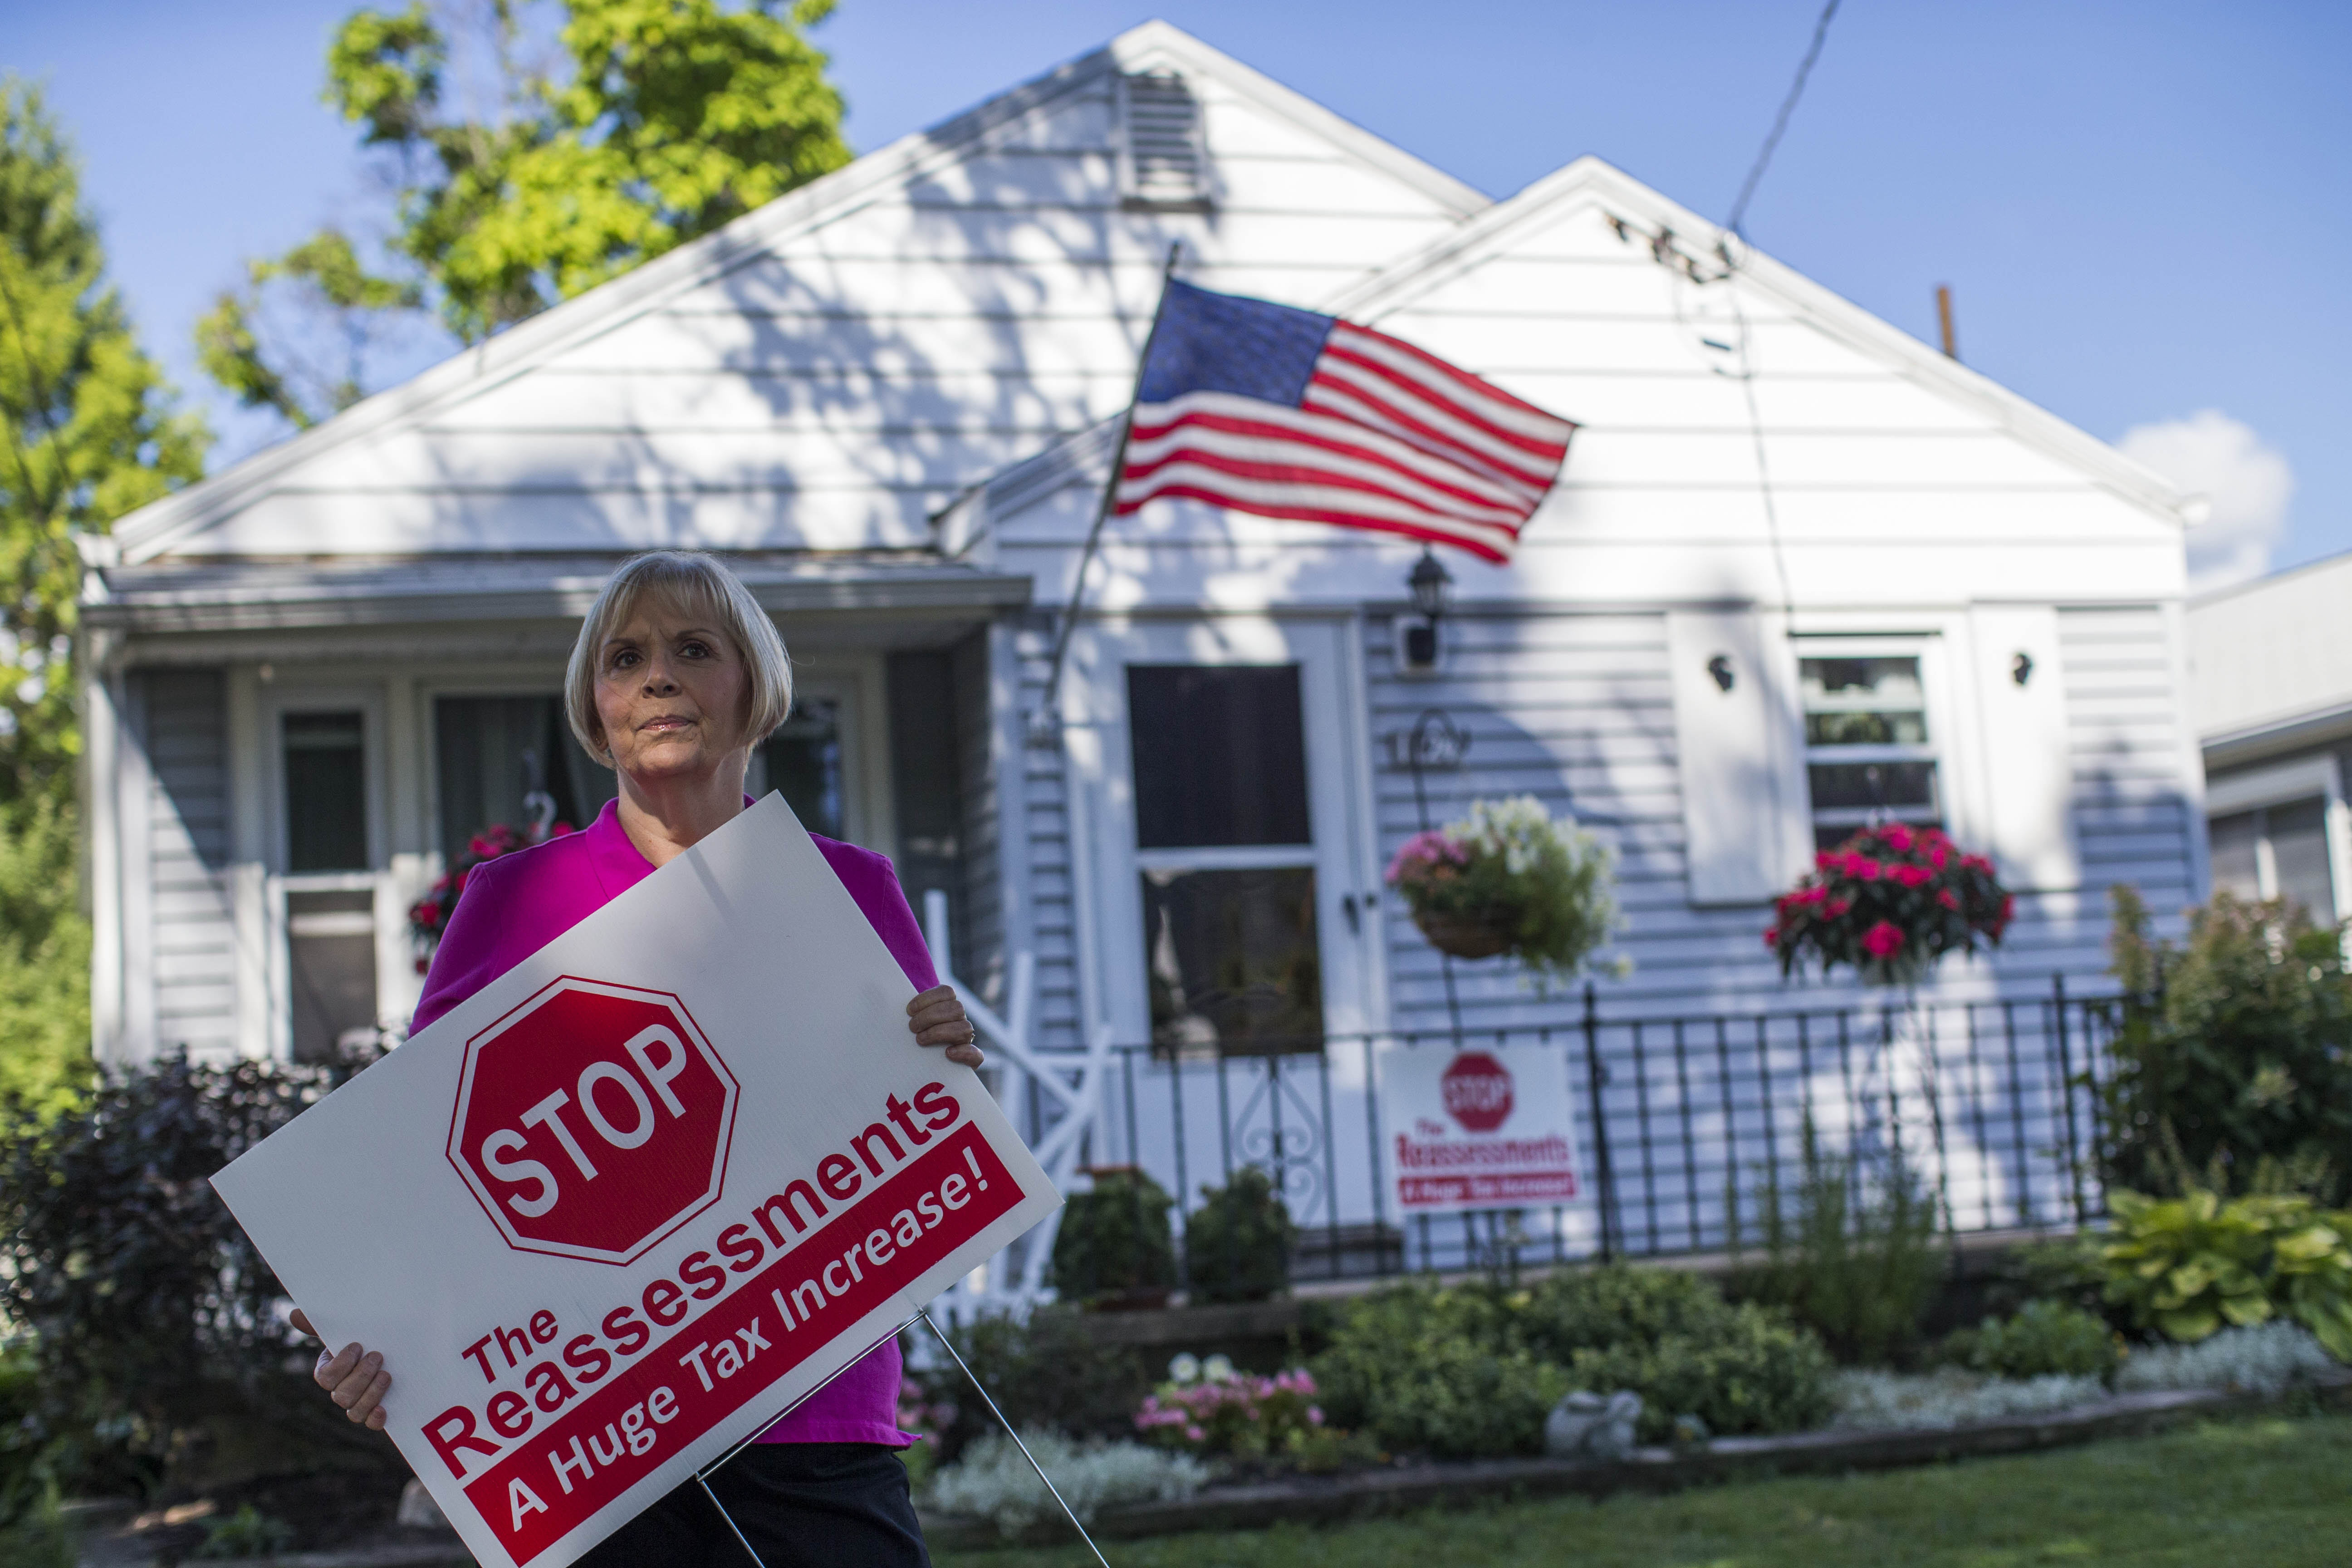 Maribeth Gangloff, who lives in the home she grew up in the Lasalle neighborhood of Niagara Falls, is fighting reassessment which she claims amounts to a tax increase, Tuesday, Aug. 23, 2016.  (Derek Gee/Buffalo News)